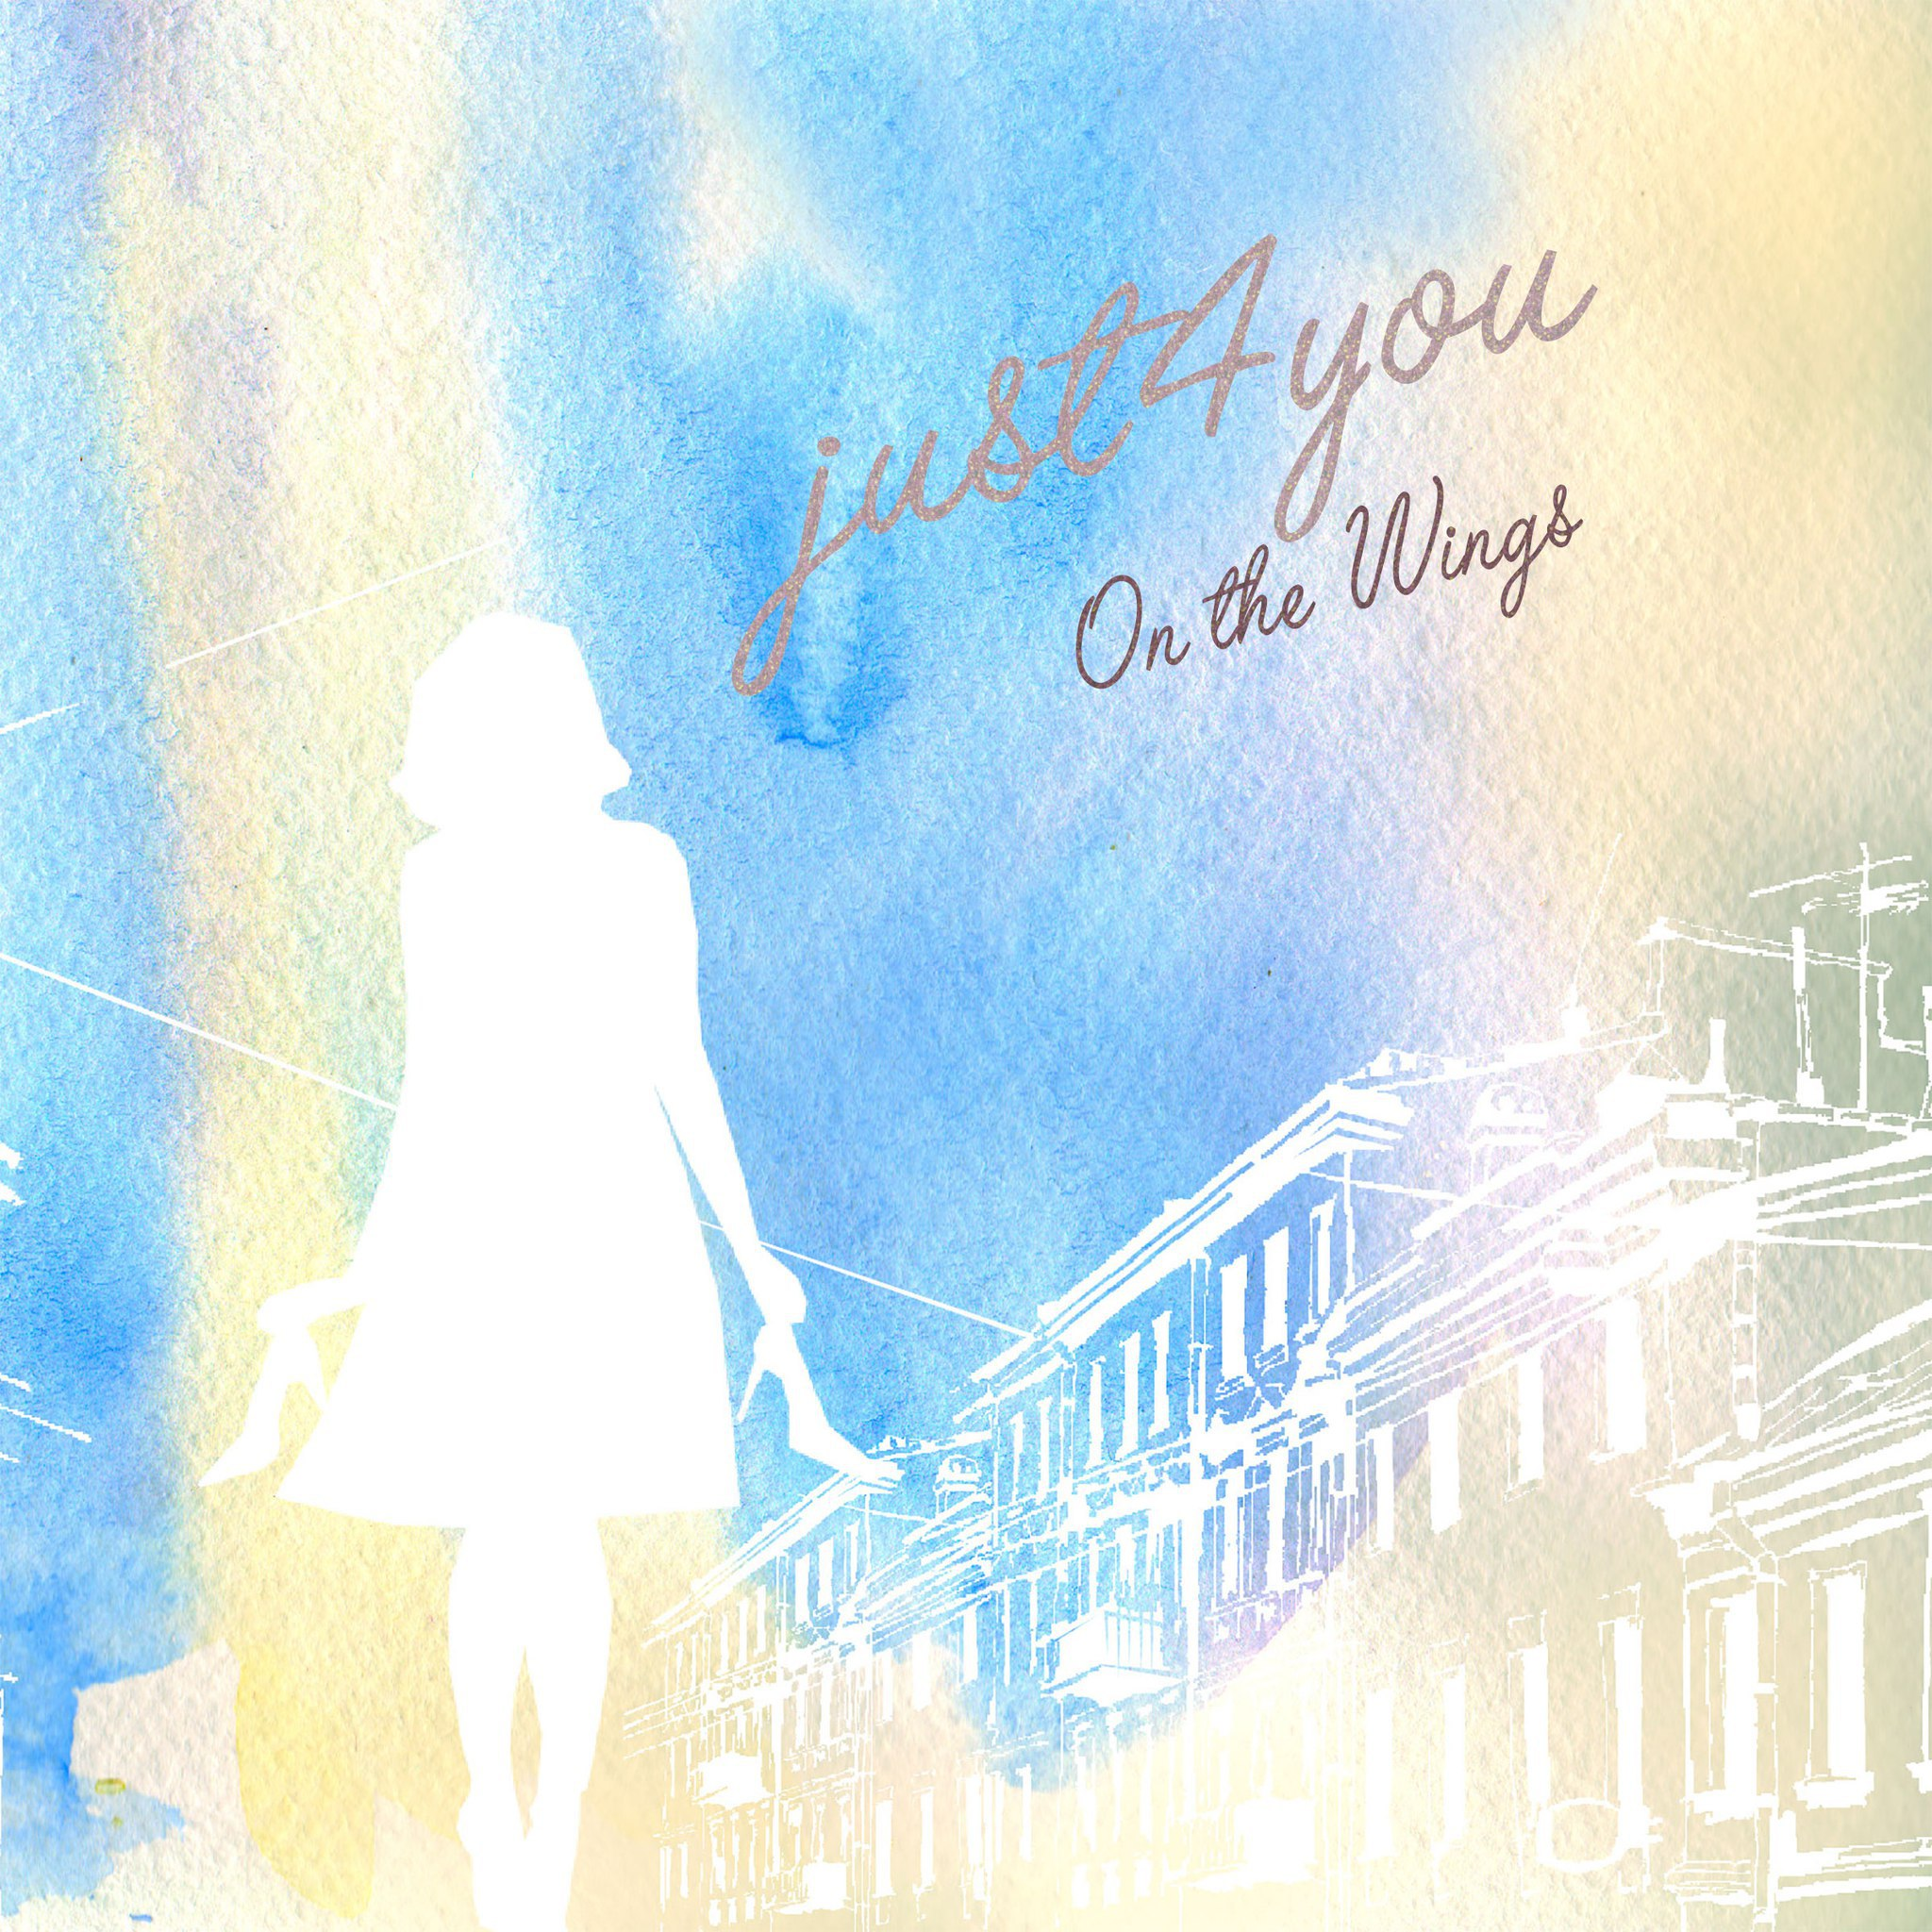 Рецензия: Just For You Project - On the wings